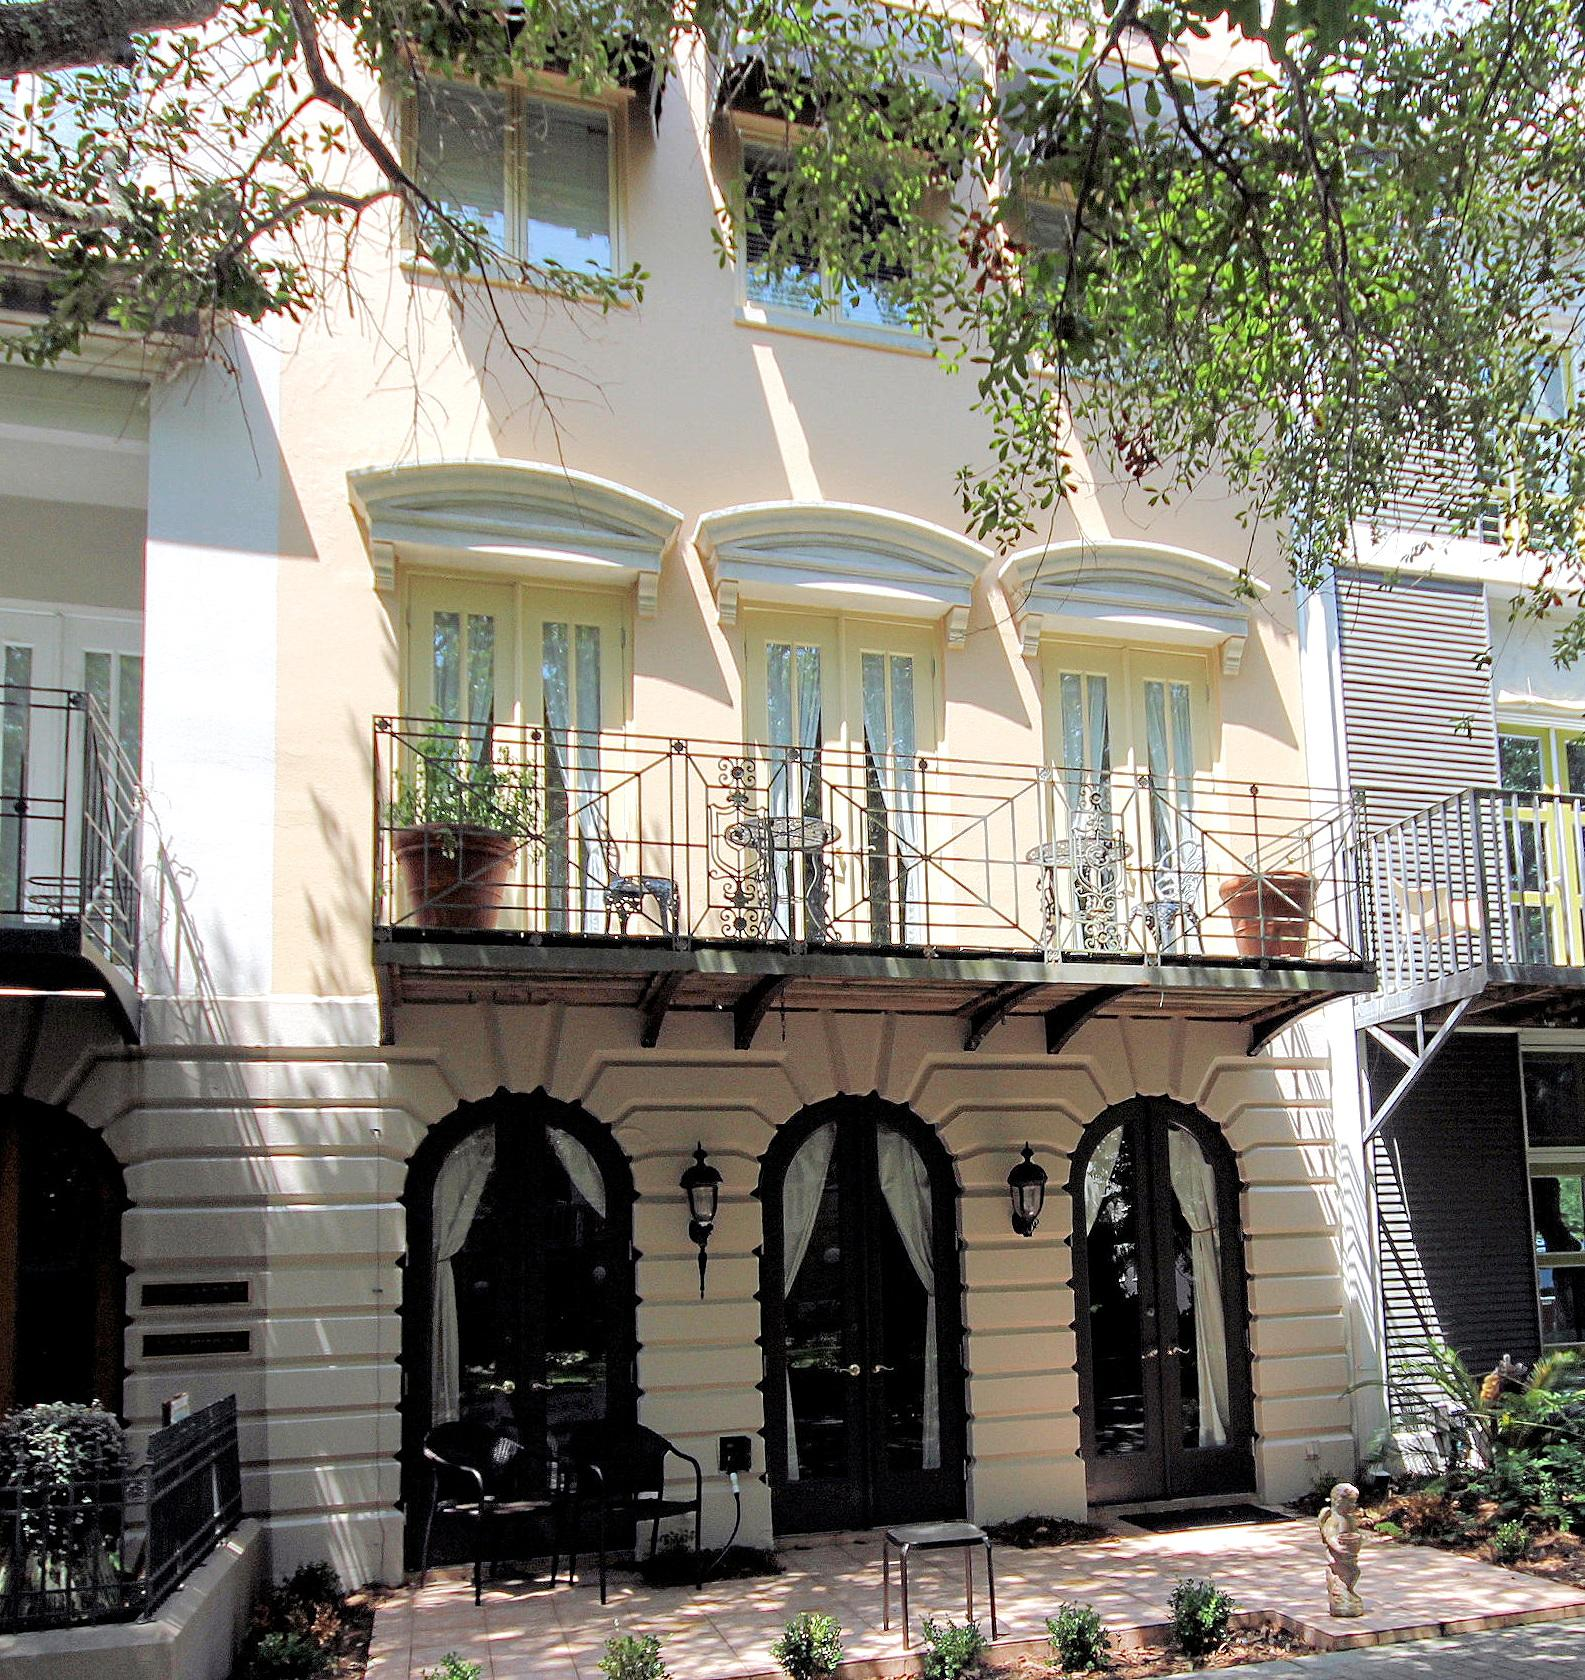 """Ruskin Place, Seaside's prized Artist's Colony, is the backdrop (or foreground) for this exceptionally lovely row-house!  Four stories tall including the tower and roof top deck, you can pretty much fit in everyone!  Beautiful details abound throughout this spacious home including gorgeous oak floors and crown molding.  The first level offers a huge master bedroom with beautiful custom built cabinetry, master bath and gorgeous bunk room with four built-in beds.  Advance to the second level to find the heart of the home - the spectacular great room!  With soaring ceiling heights, abundant windows and French doors and a two-story mezzanine, the kitchen and living room are bathed in plenty of soft, natural light.  The bright, white tiled kitchen has an island for easy ...   continued... ...cont.   circulation and a dining bar.  Off the living room is a spacious patio for outdoor living and entertaining.  While separate now, the dining room can be converted to a fifth bedroom with an adjoining half bath.  Wide and comfortable spirals take you to the third level with two additional bedrooms and en suite bathrooms.  Again, an open patio off the west bedroom provides additional space for privacy or sunning.  Beautiful floor to ceiling bookshelves helps neatly hold all those 'first editions' and cherished treasures.  Climb one more level to the tower room with built-in seating and surrounded by roof top deck for the best views in town!   From here, sunset watching is an absolute must.  Ruskin Place is the """"Central Park"""" of Seaside, and  CENTRAL PARK is its crowning jewel."""